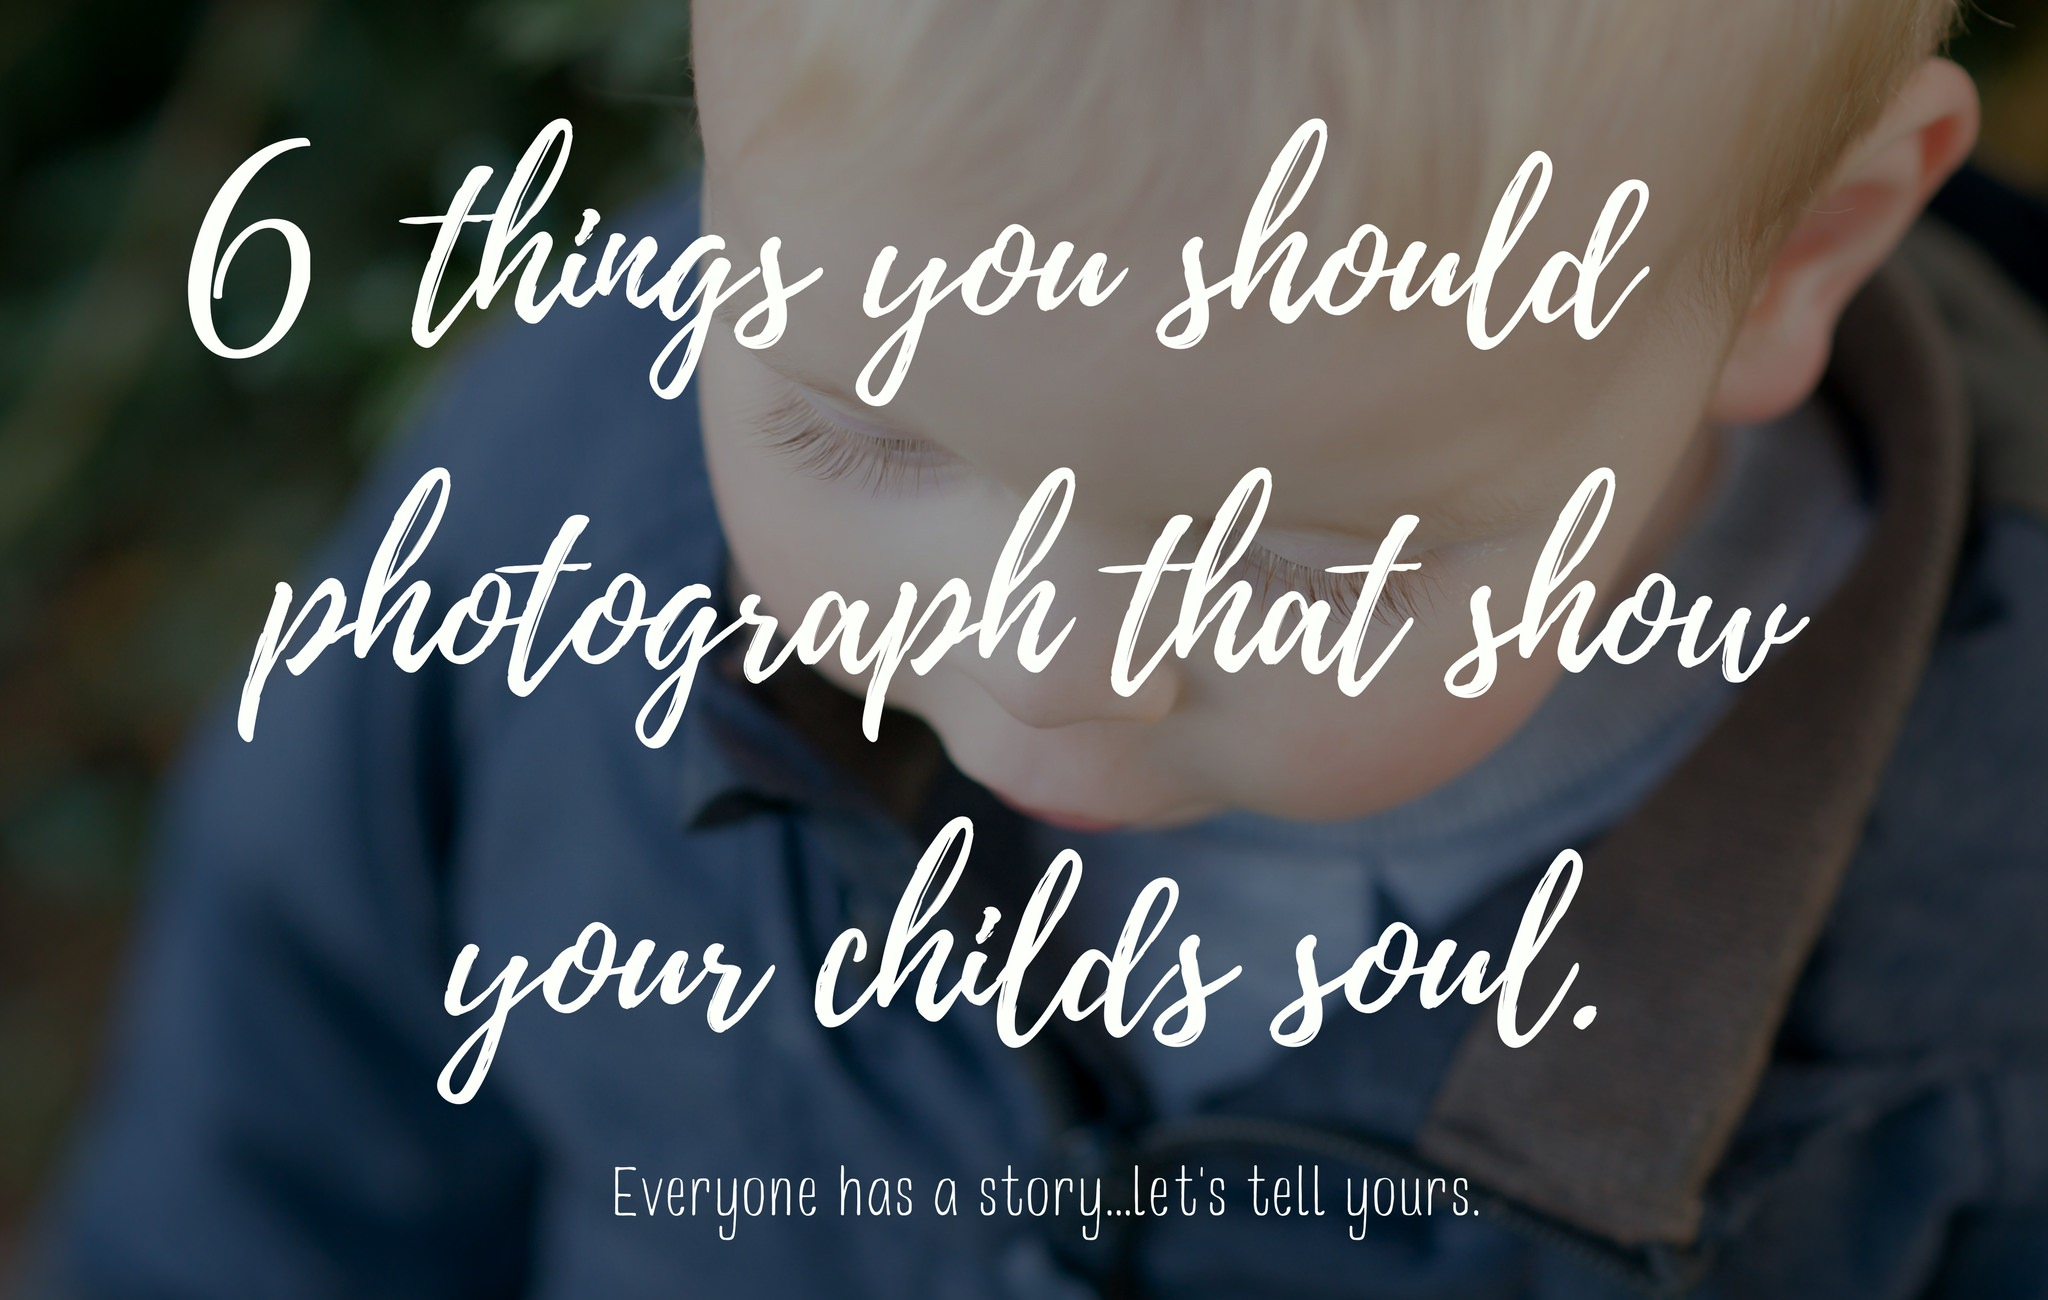 6 things you should photograph that show your childs soul.